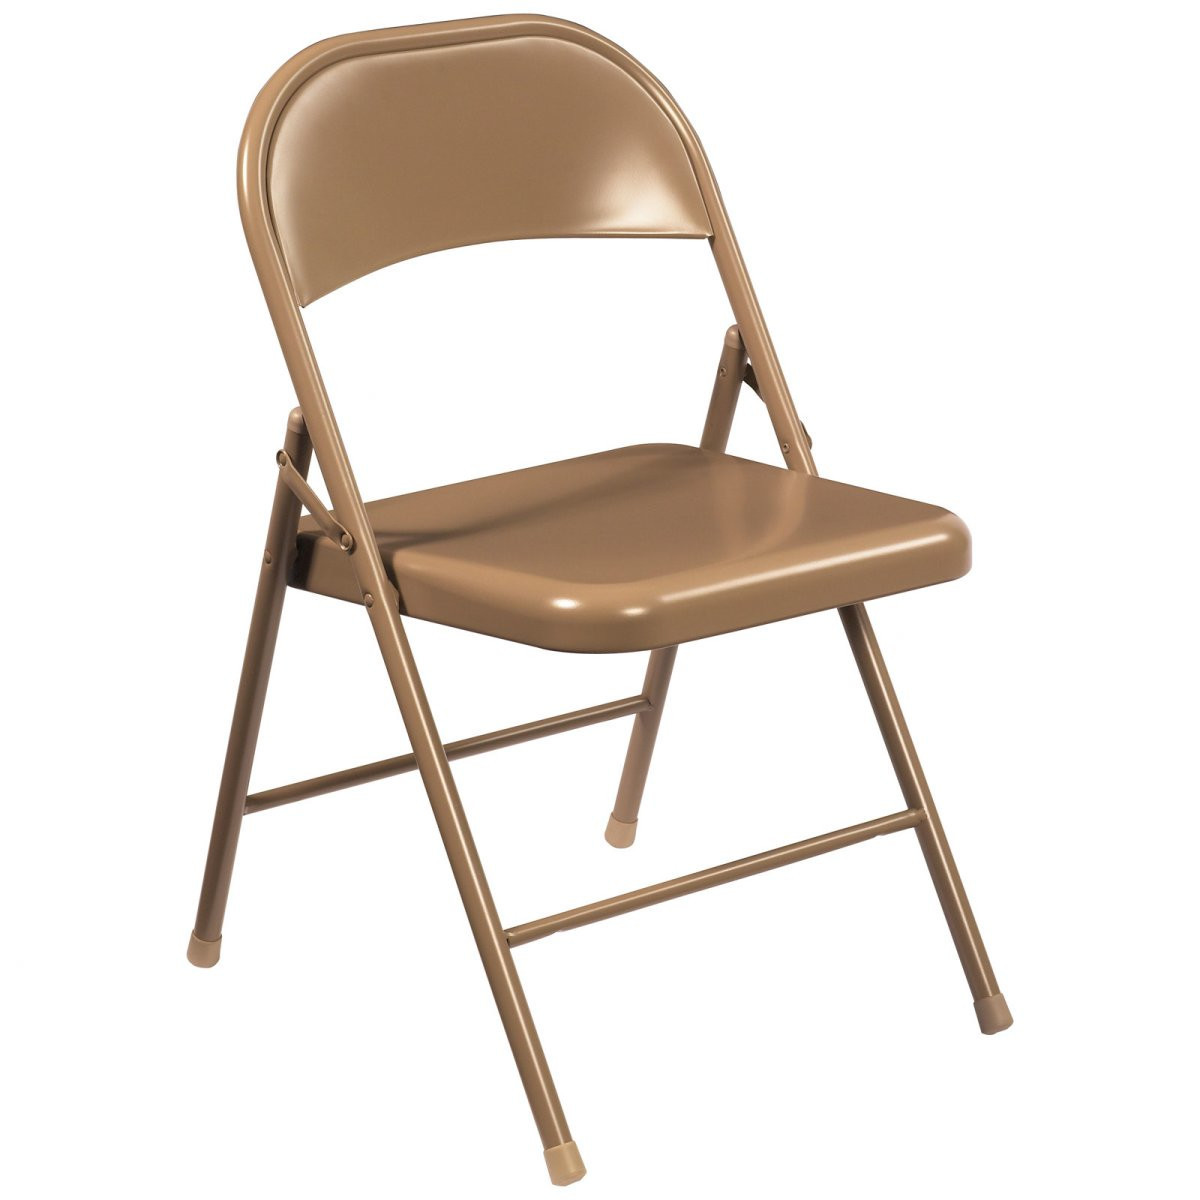 Best ideas about Metal Folding Chair . Save or Pin National Public Seating mercialine Steel Folding Chair Now.